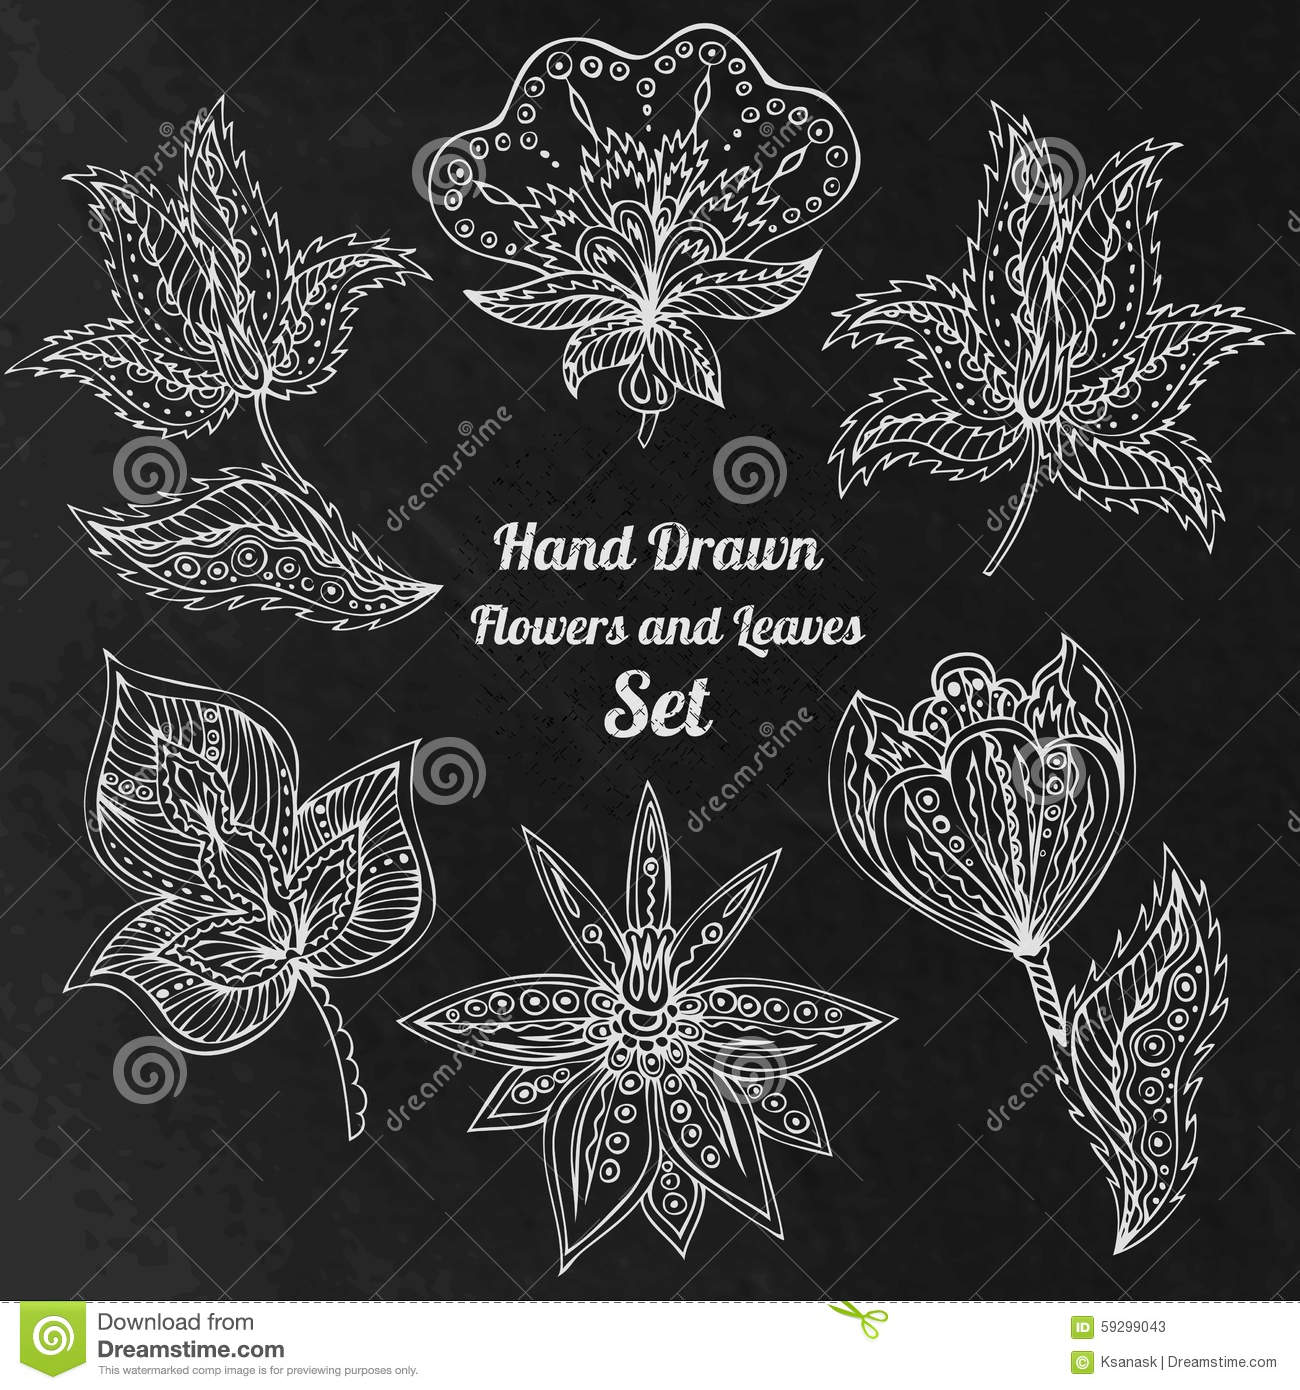 Abstract Line Drawing Flowers : White line art flowers and leaves at black grunge